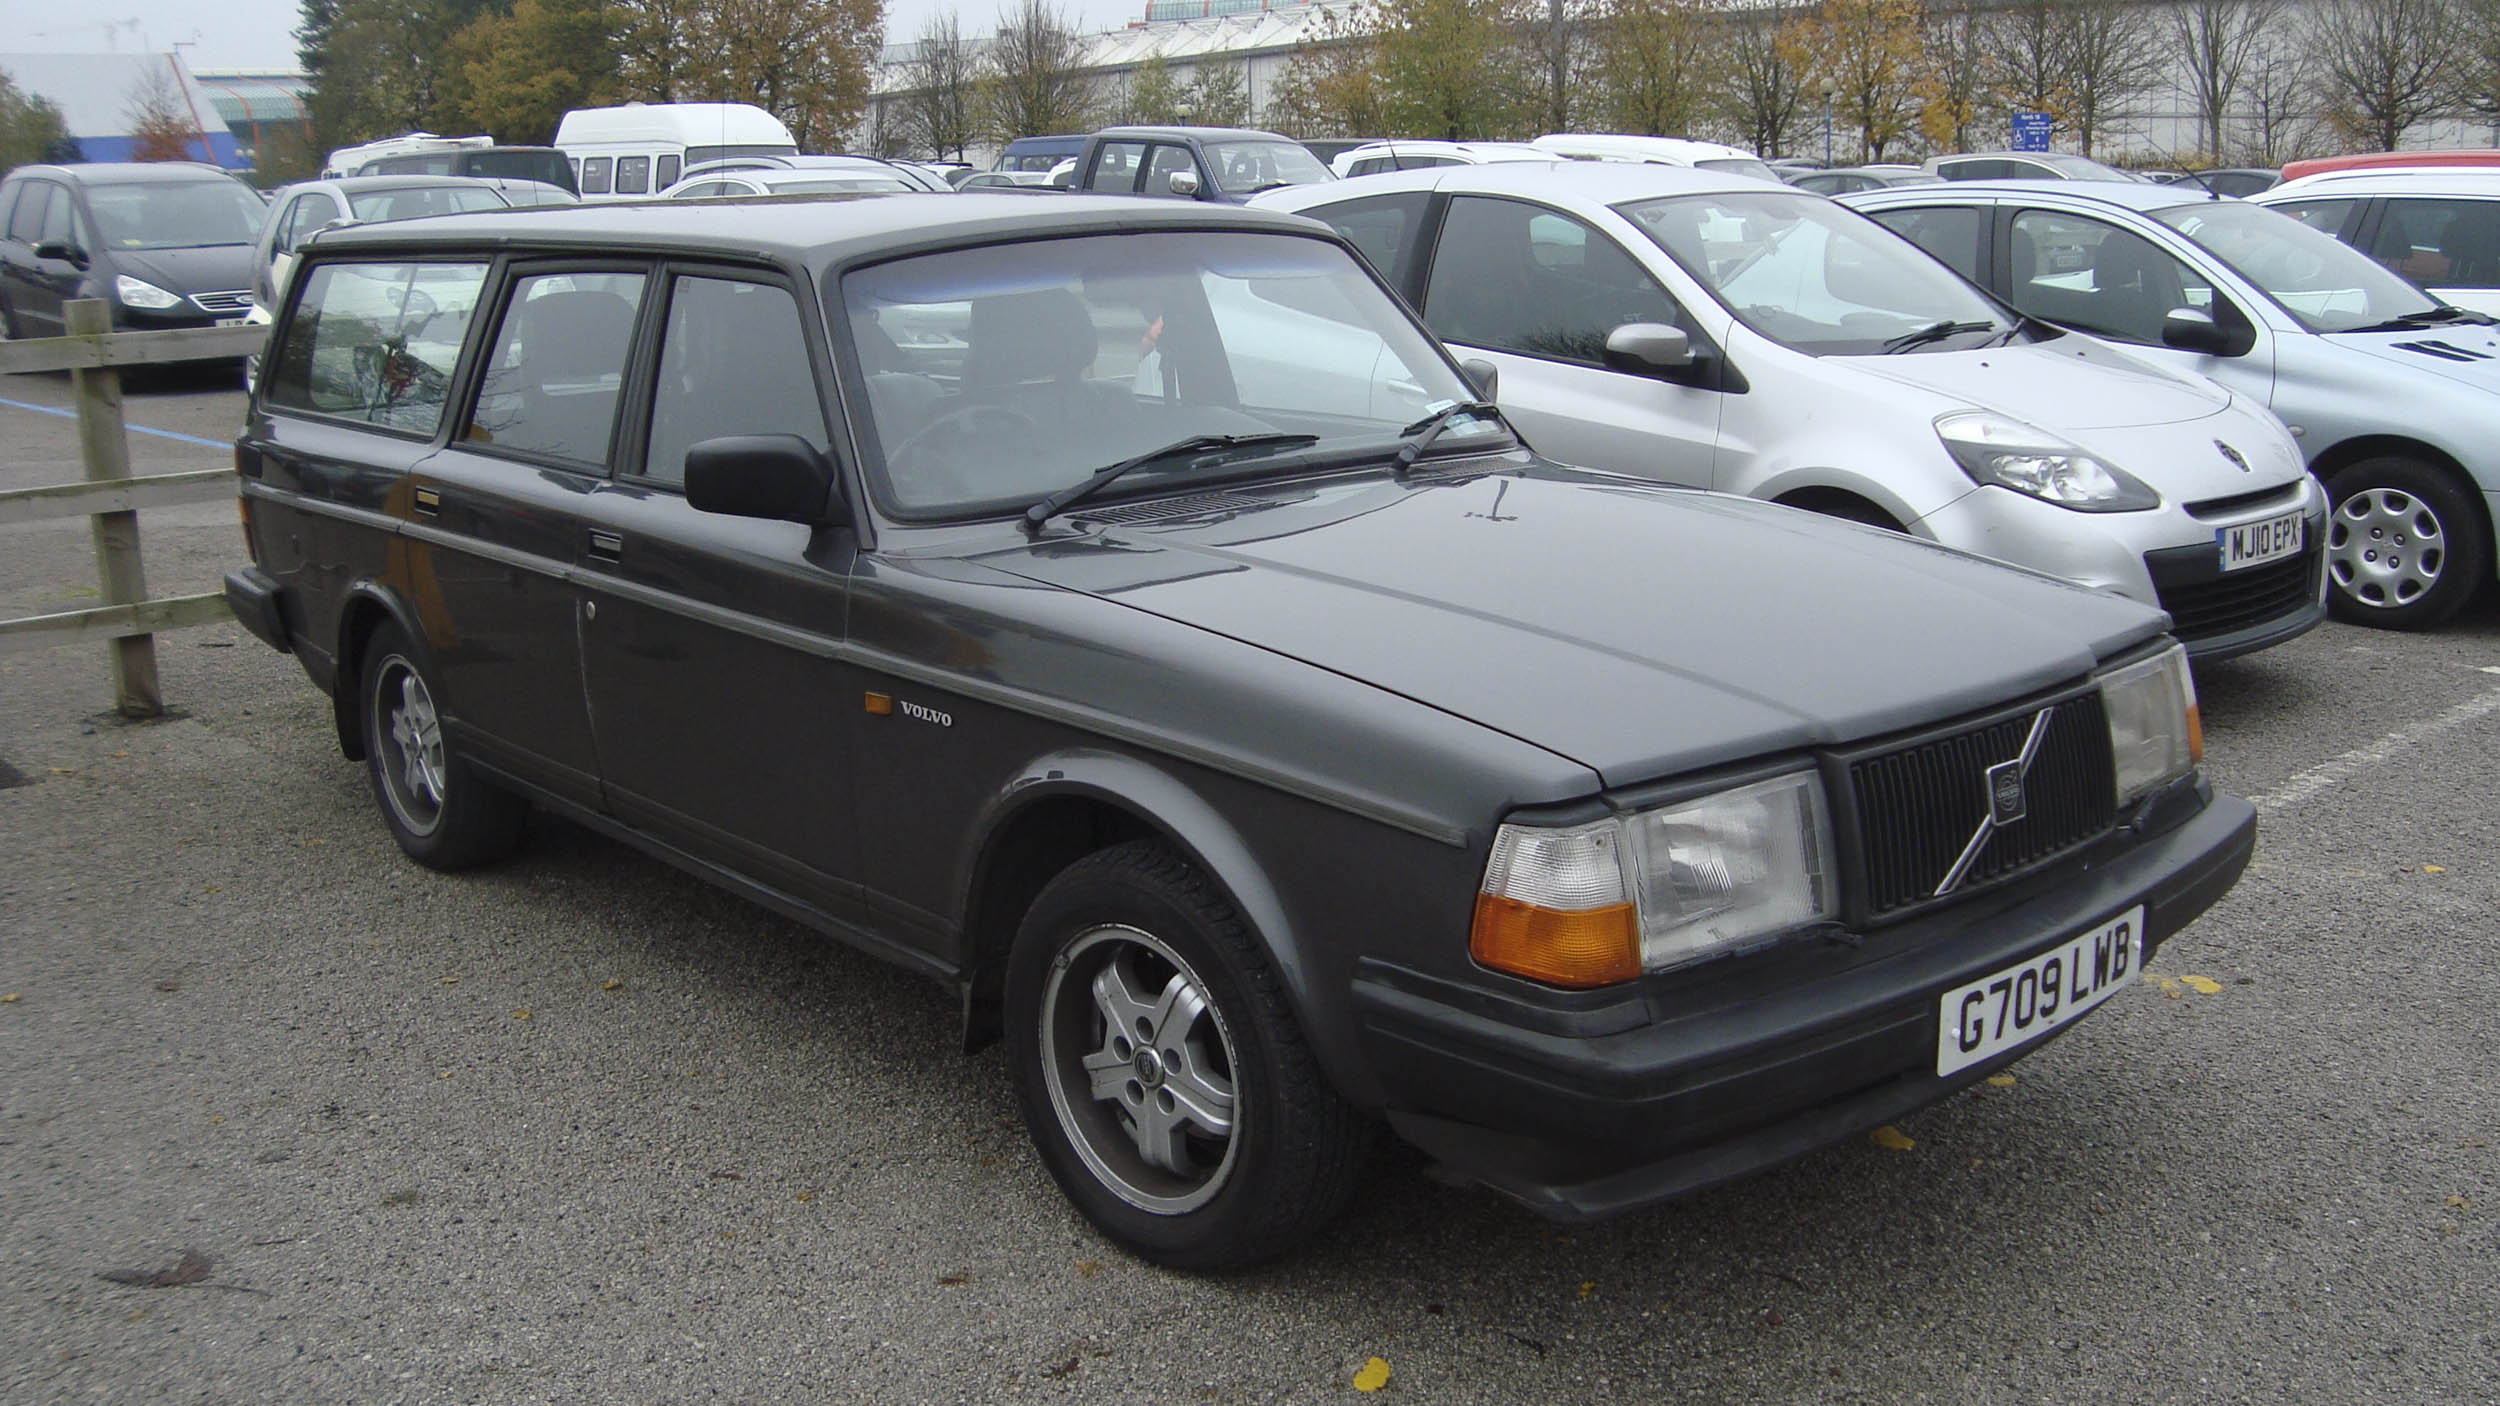 A turbo Volvo wagon like the one we had for a few years.